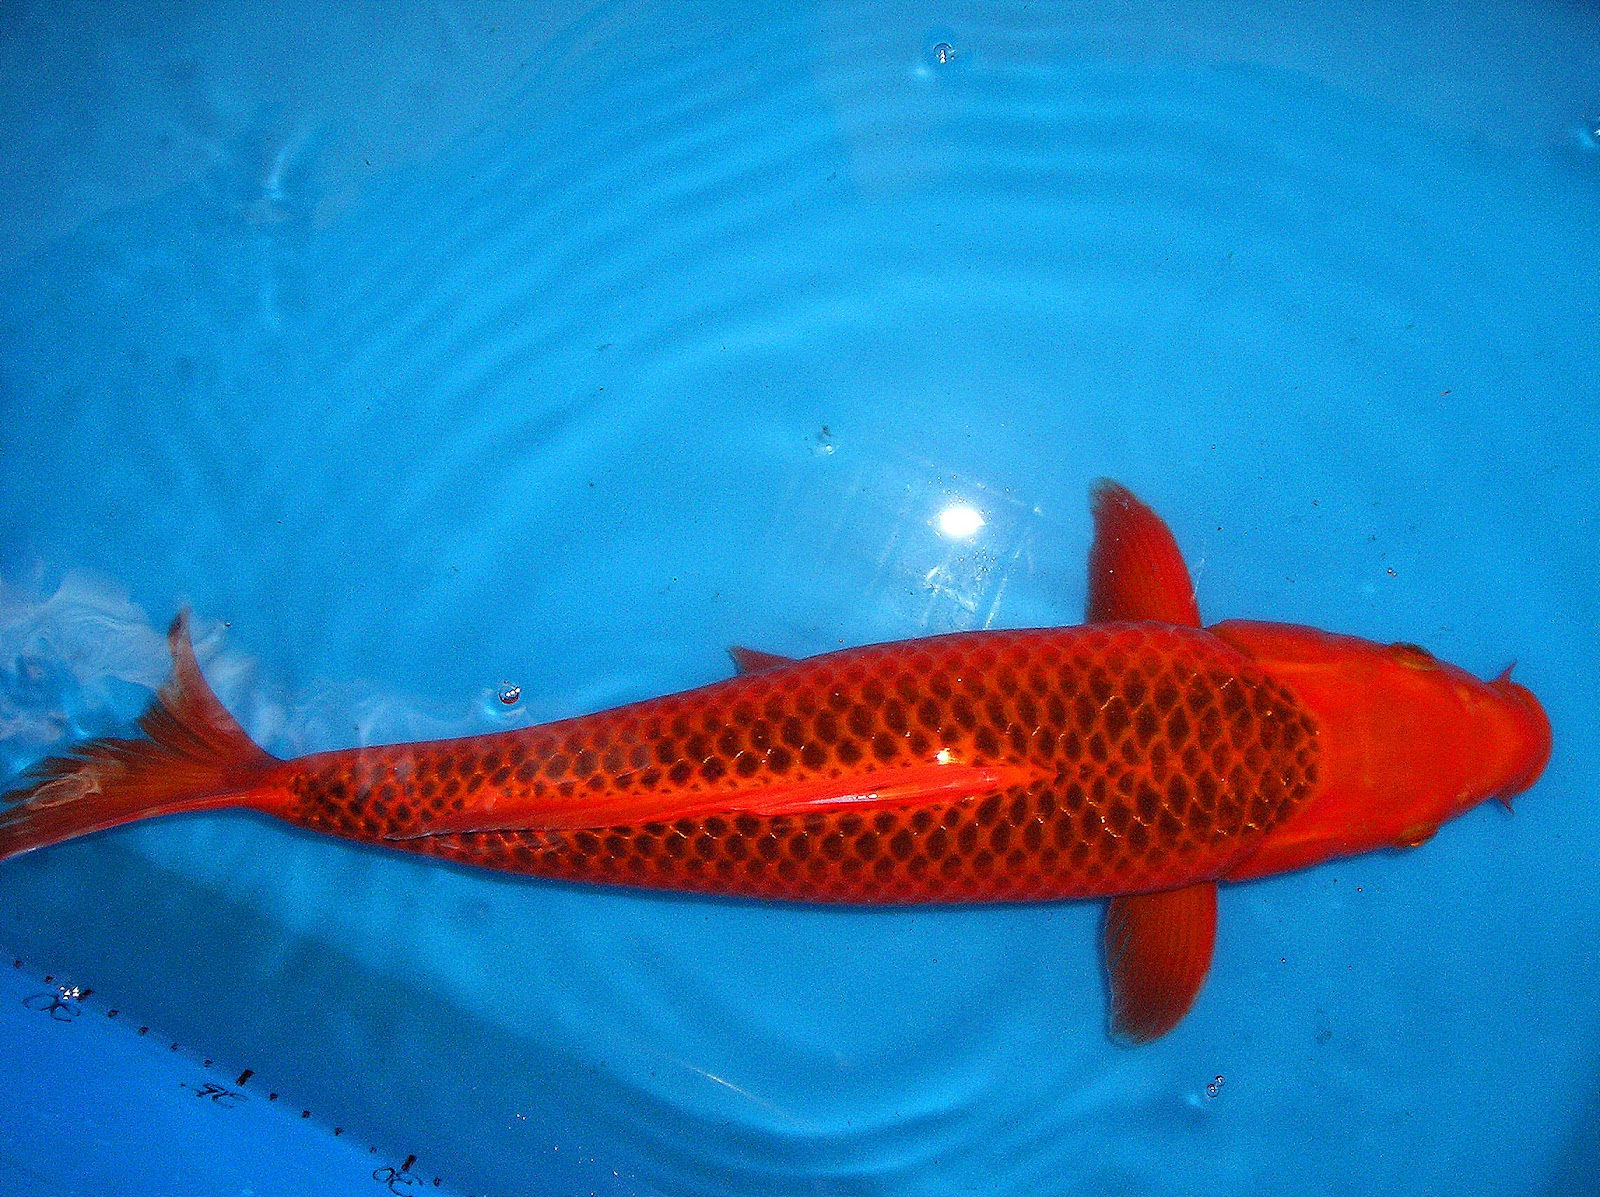 Zenkoi marketing imported japanese carp koi fish for Sakai koi for sale